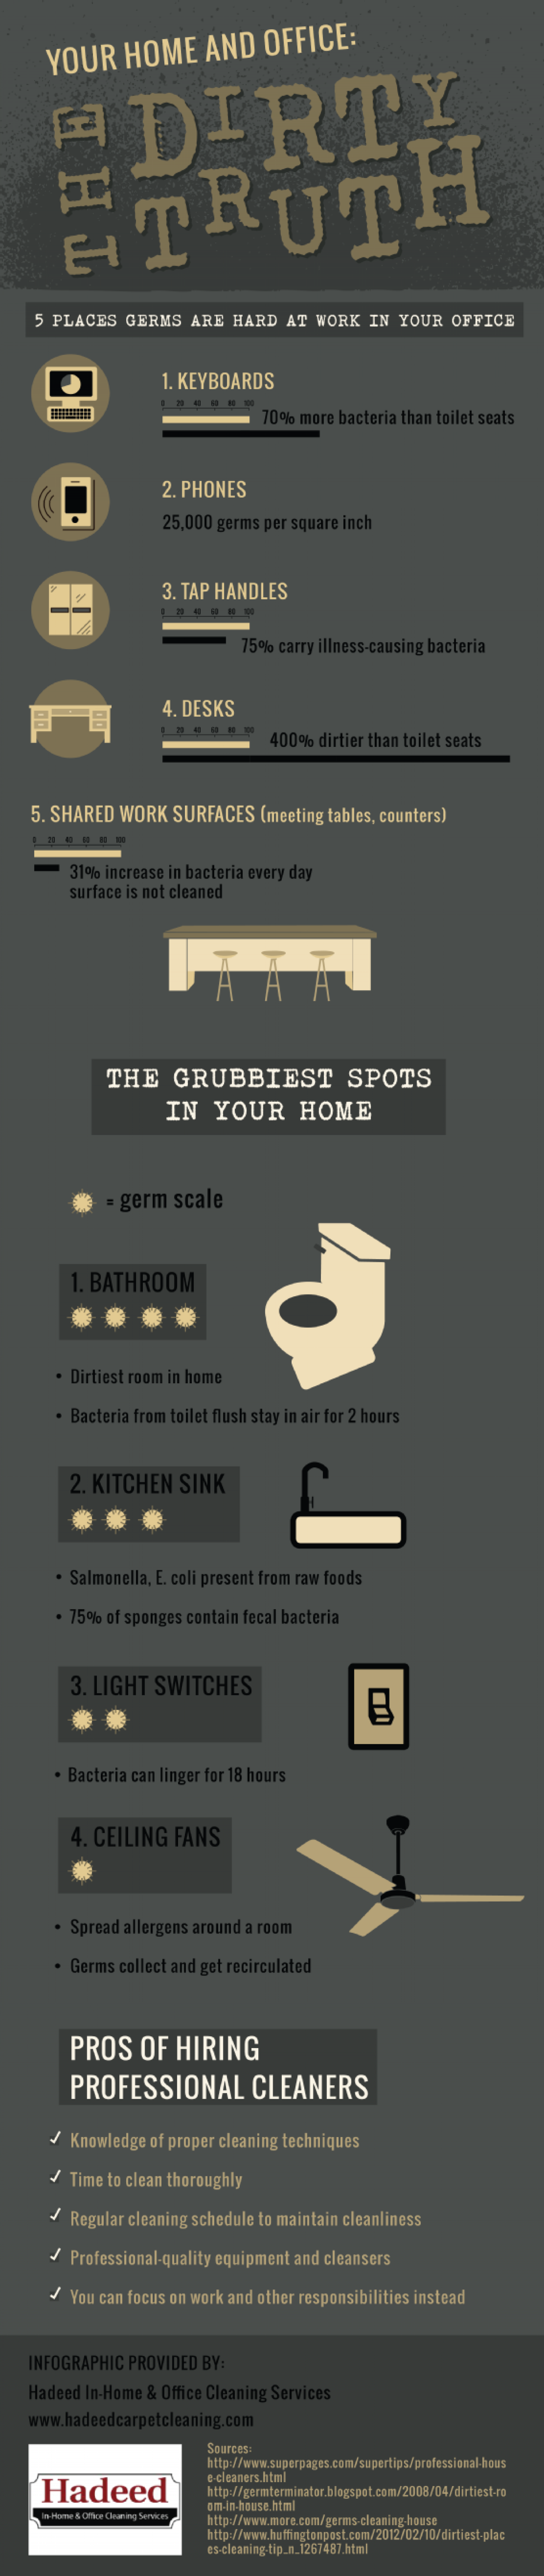 Your Home and Office: The Dirty Truth Infographic